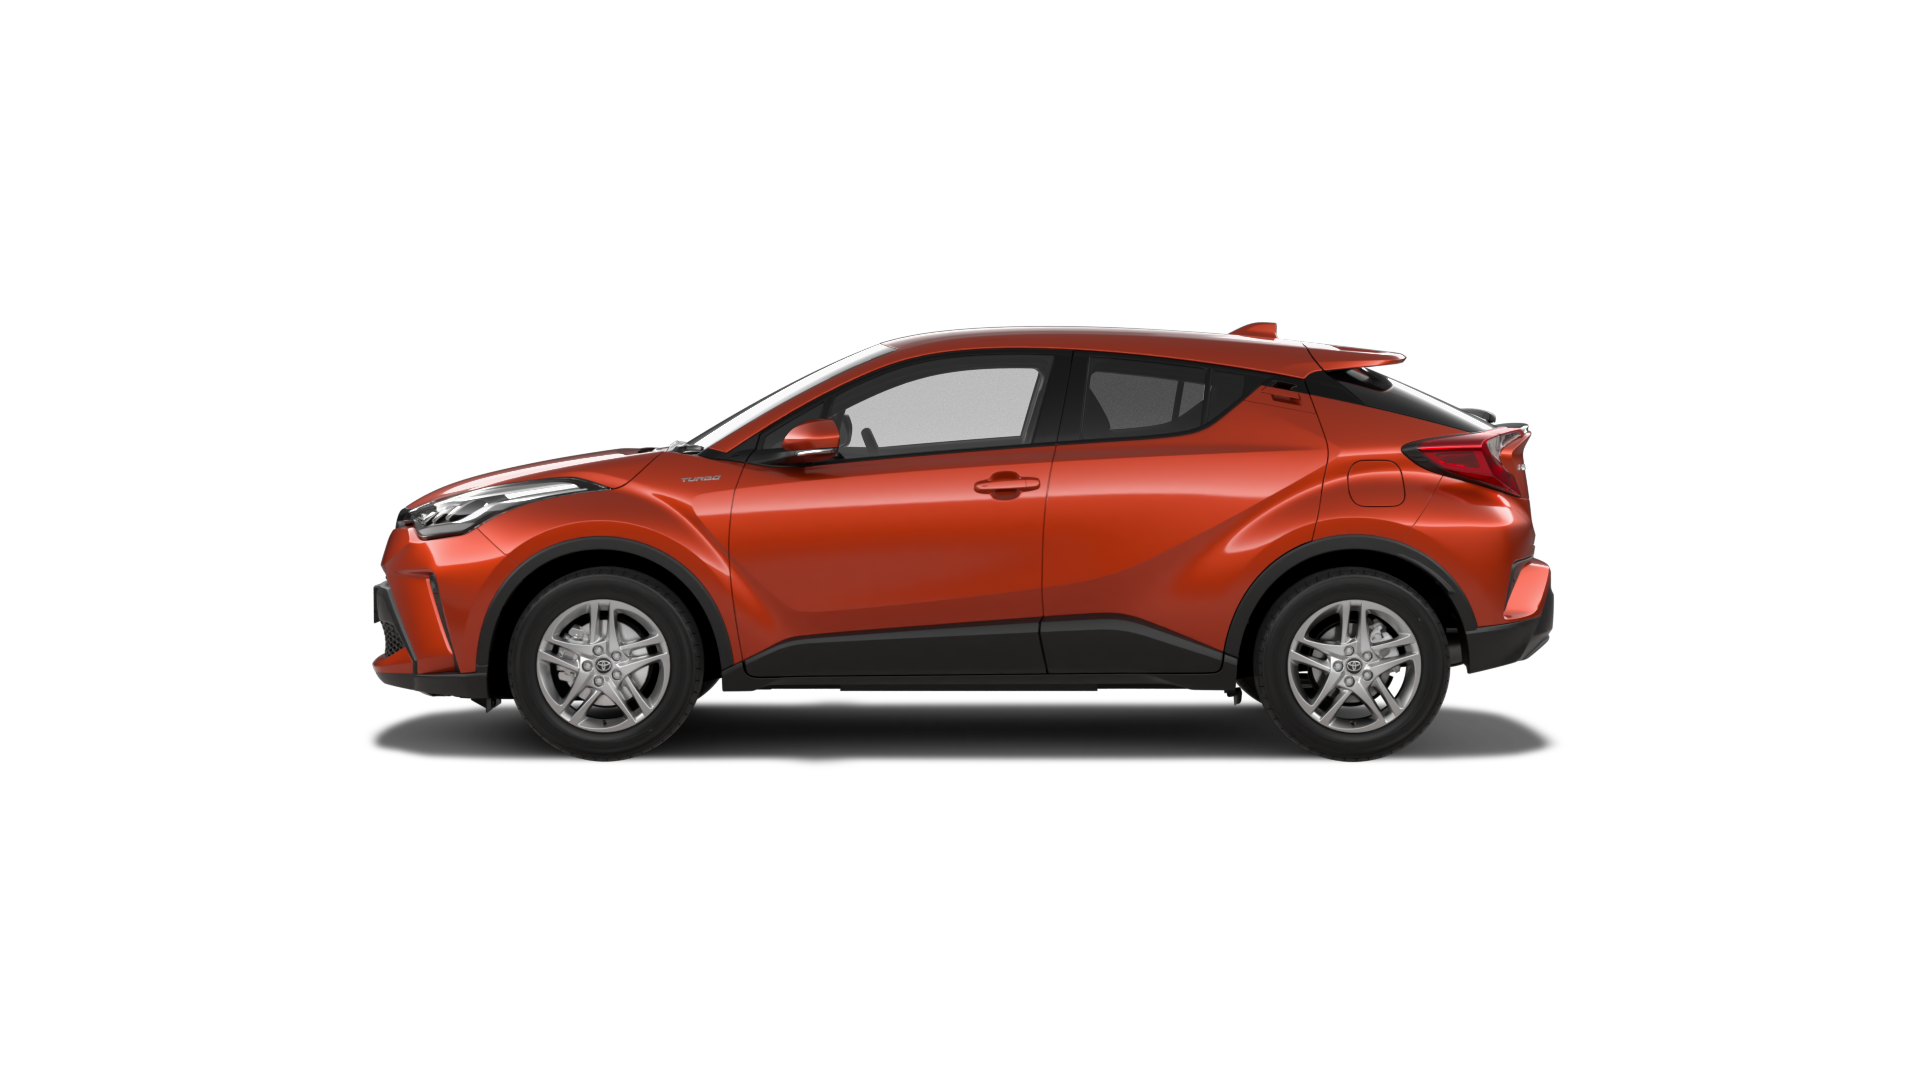 The Toyota C-HR GXL is here. Ask us today at Sunshine Toyota on the Sunshine Coast! Your local Toyota dealer!